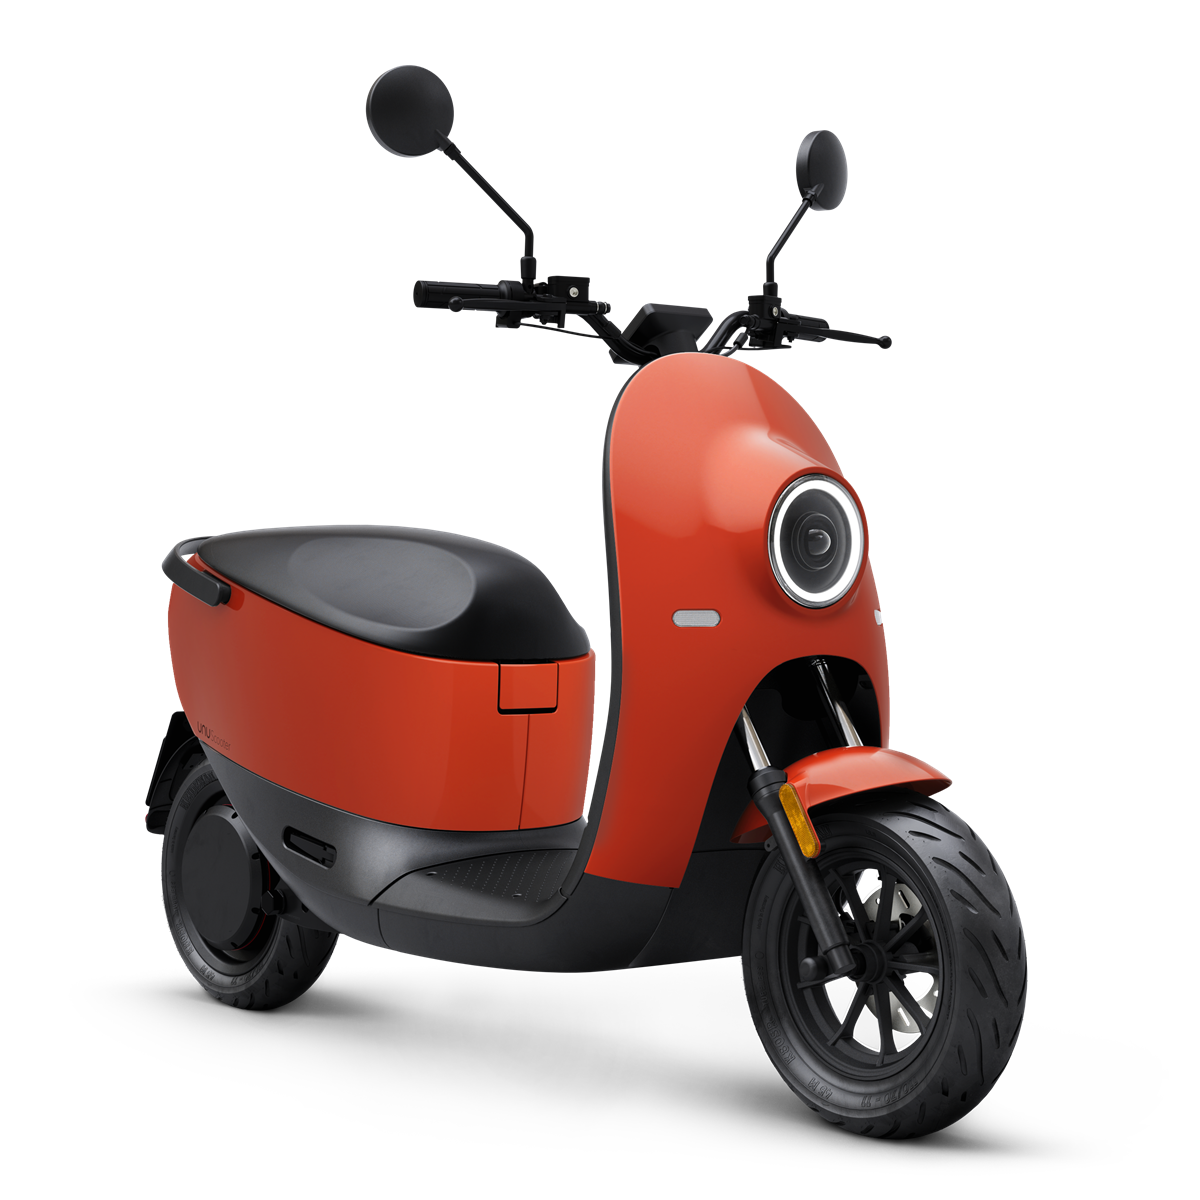 unu Scooter_Glossy Red_ab EUR 2.799